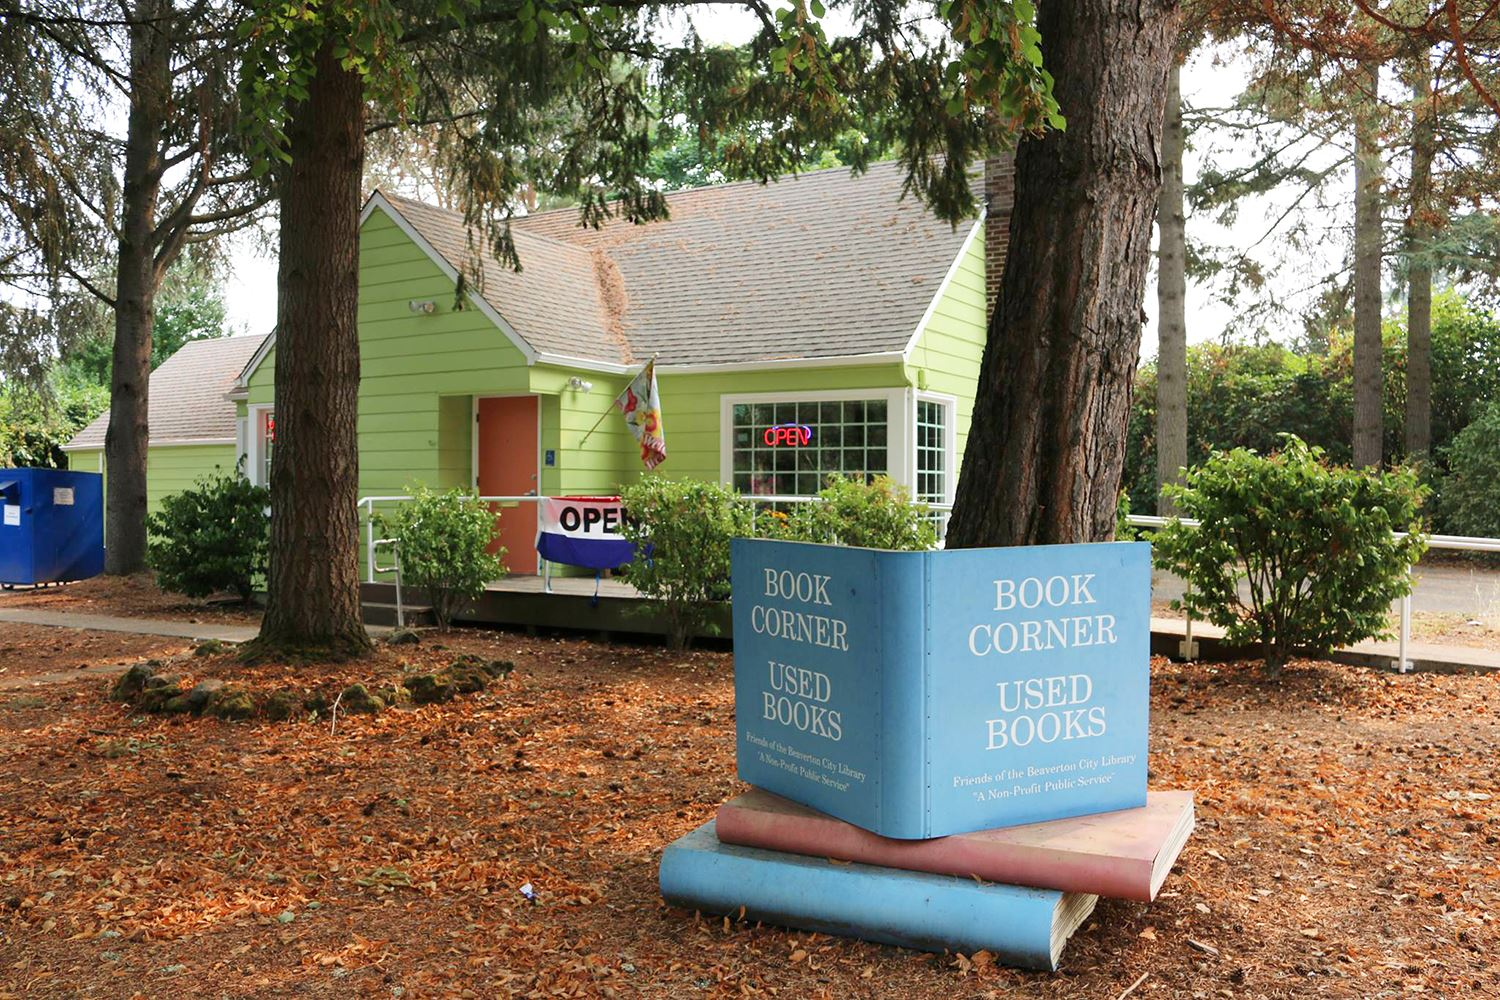 Photo of green house with large pink and blue books outside of it.